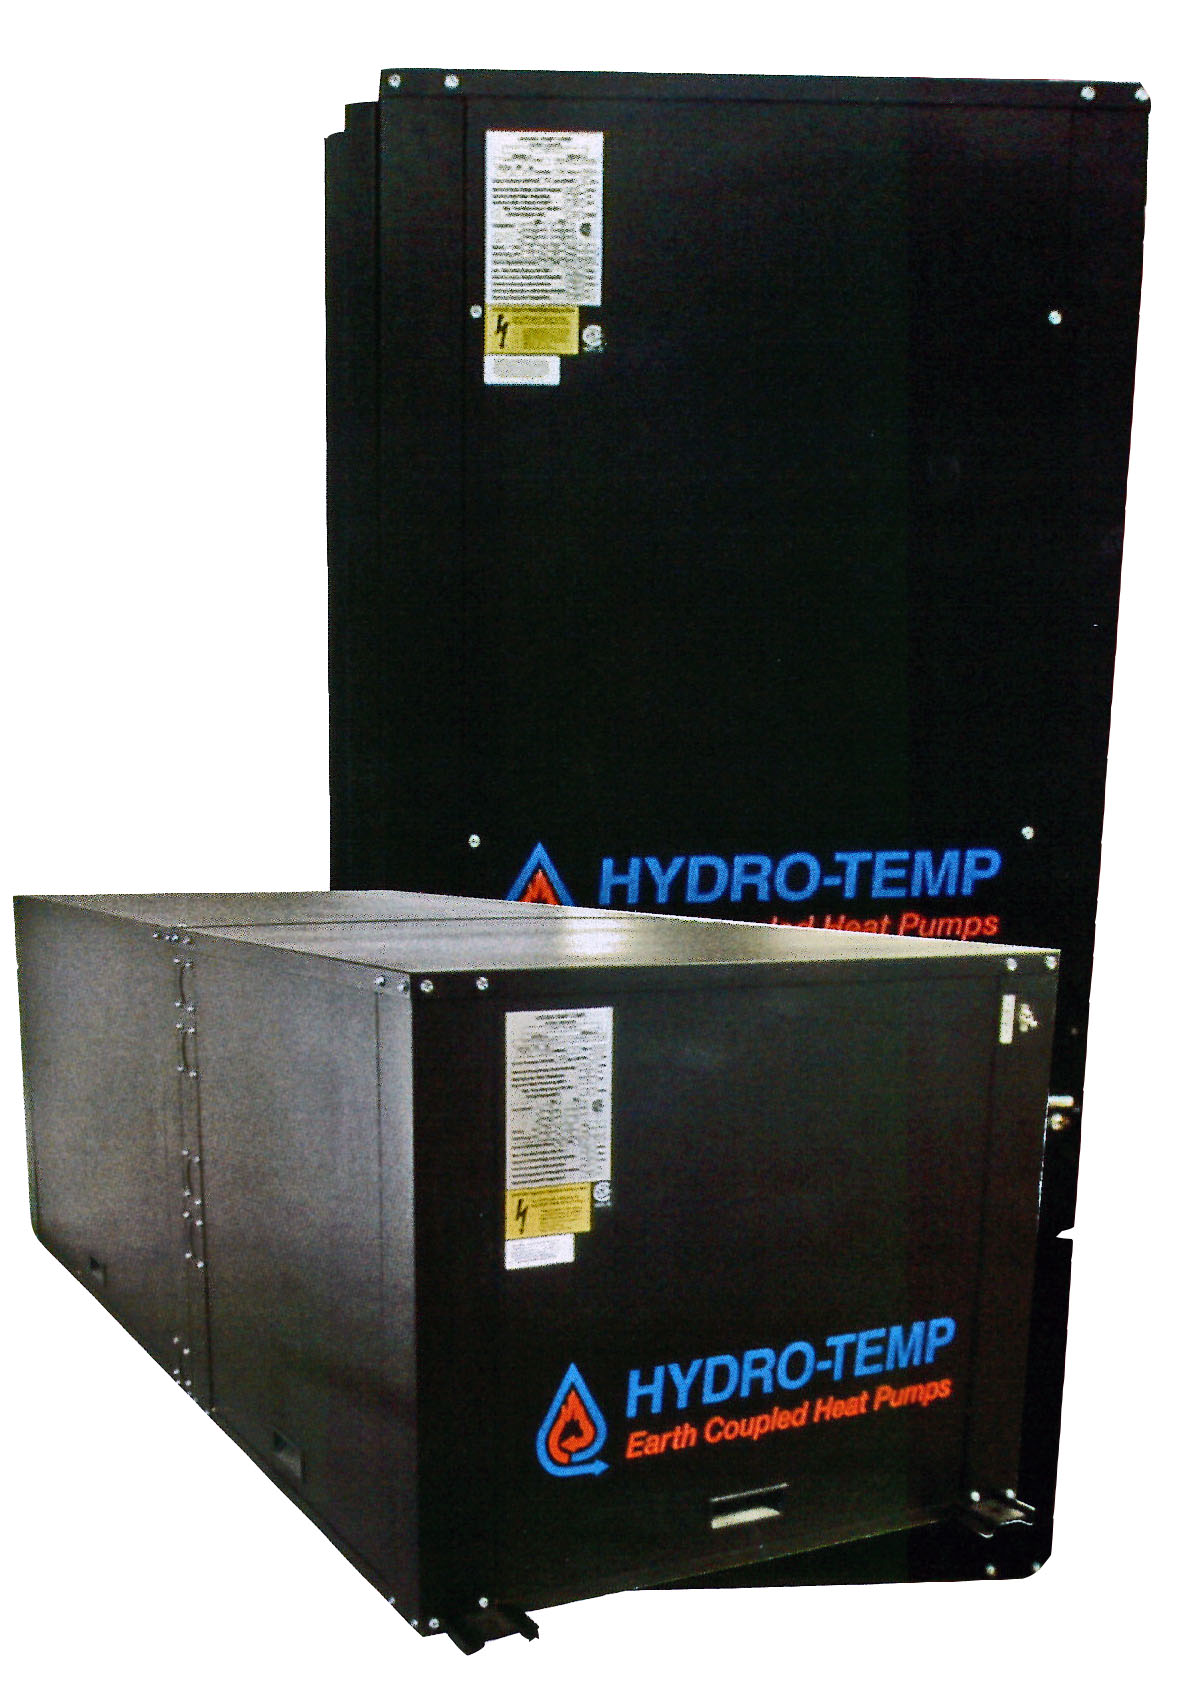 Hydro Temp Geothermal Heat Pumps #B53516